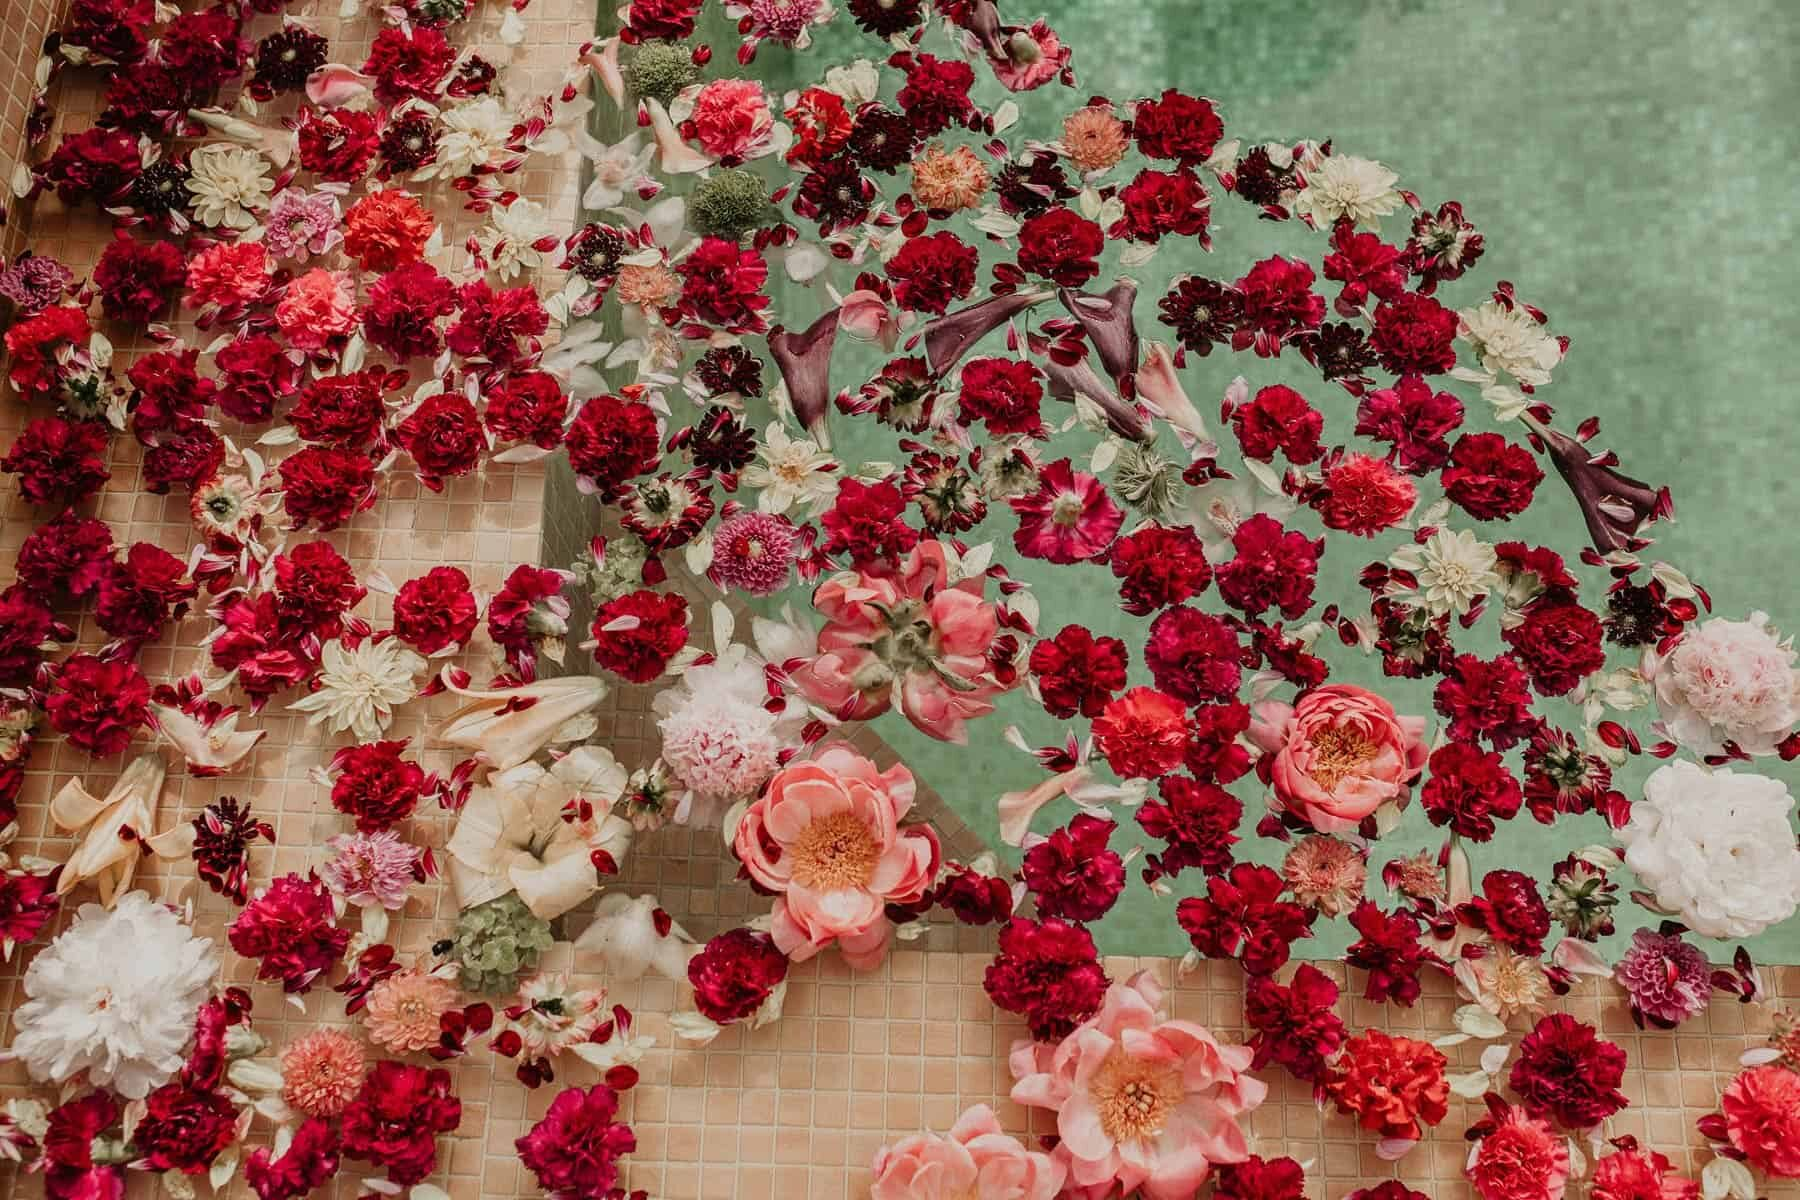 red and pink flowers in a swimming pool